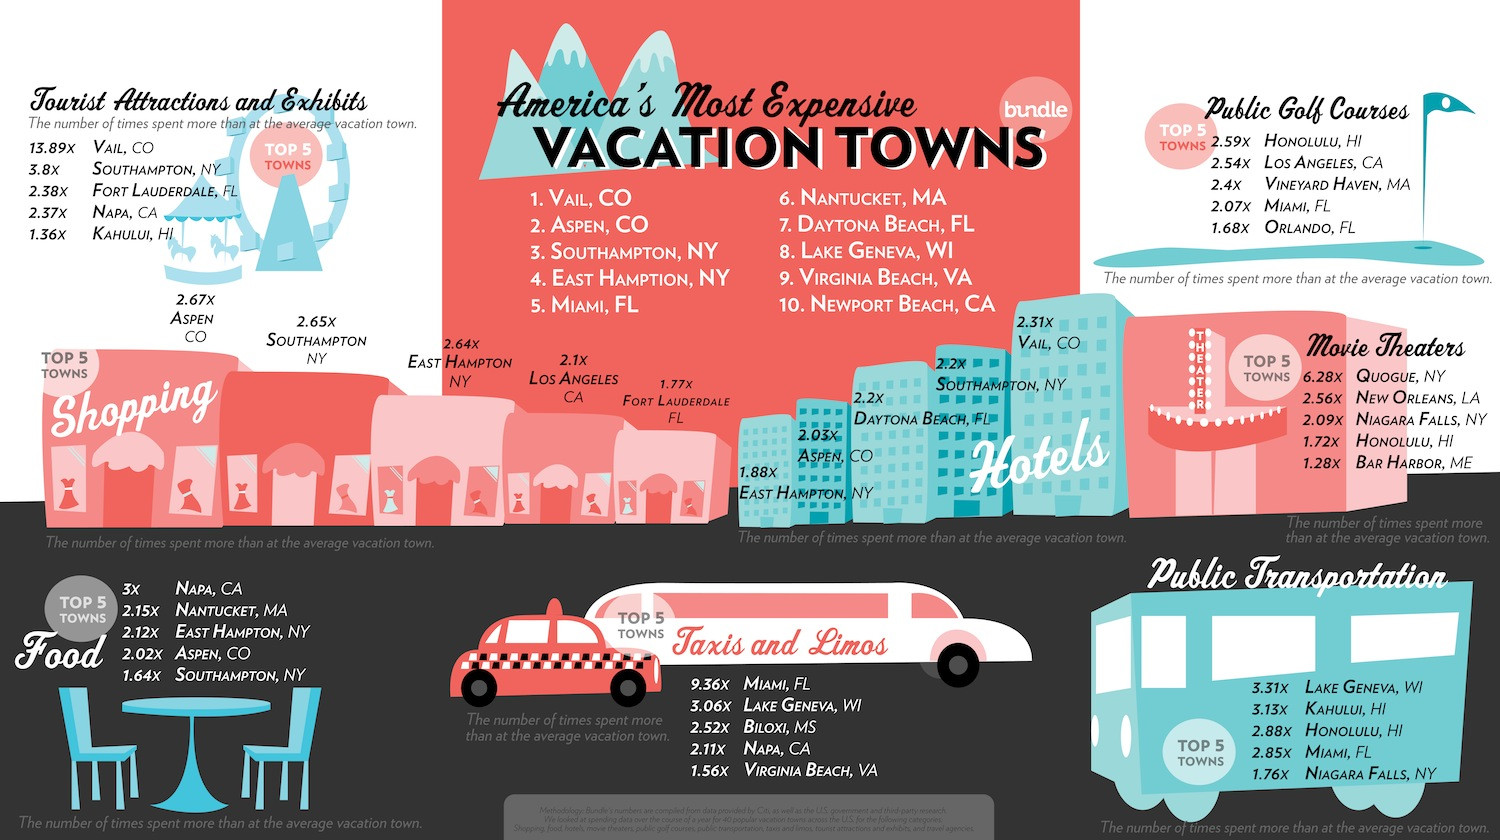 America's Most Expensive Vacation Towns Infographic